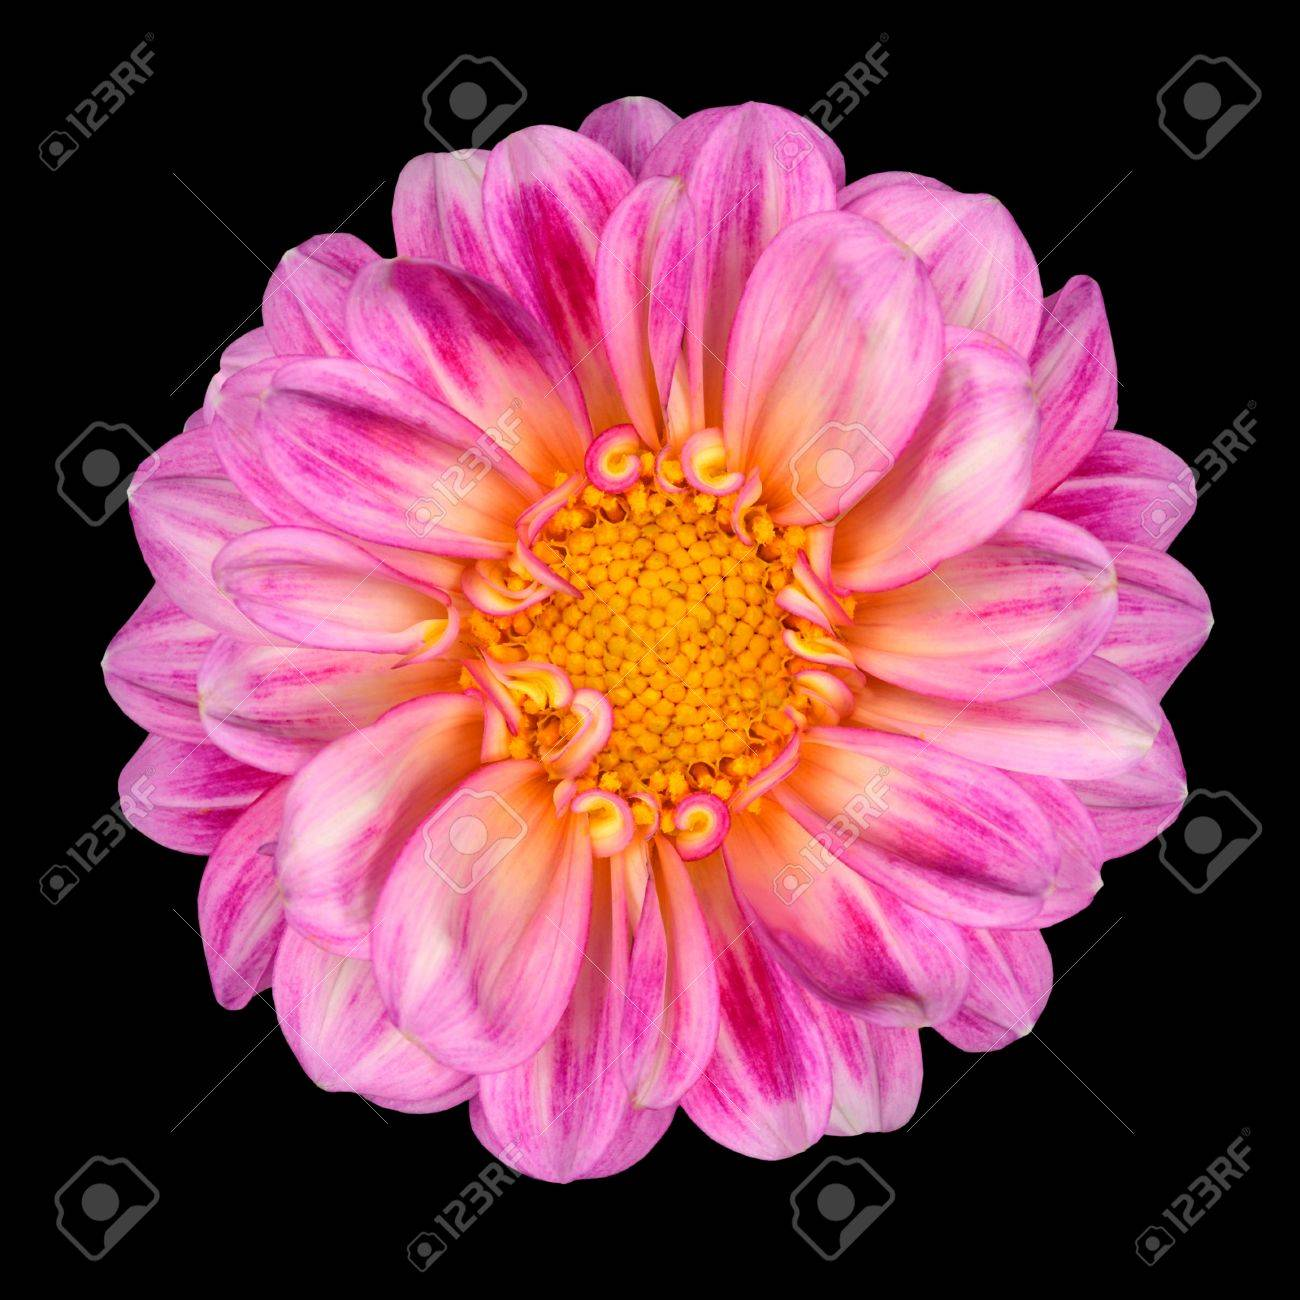 Dahlia flower with pink white petals and yellow center isolated dahlia flower with pink white petals and yellow center isolated on black background stock photo mightylinksfo